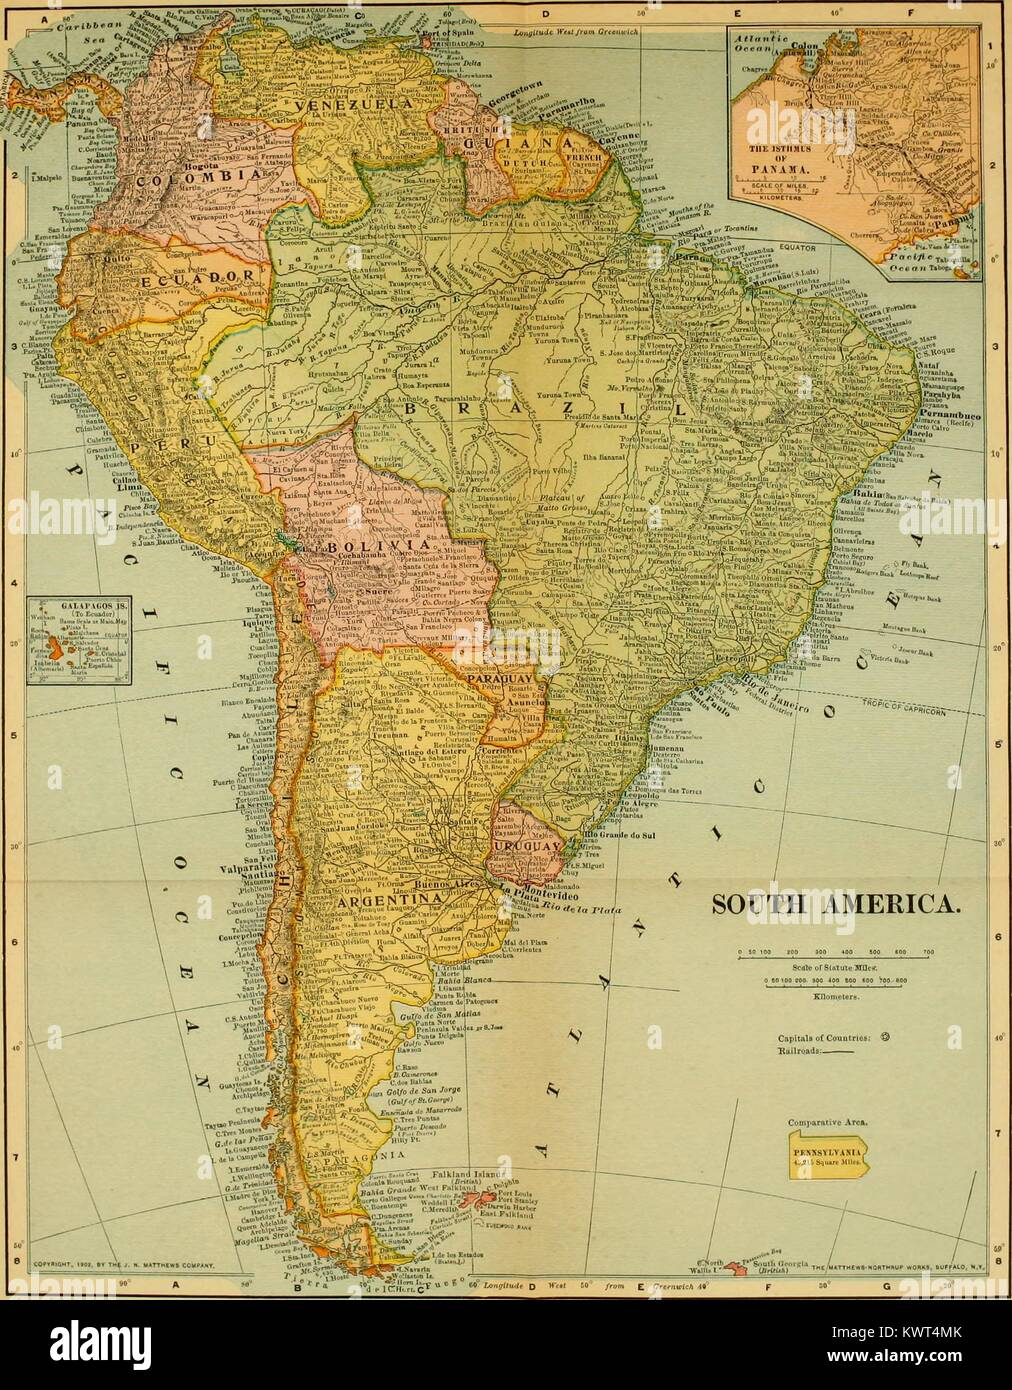 Map of south america identifying countries including bolivia brazil map of south america identifying countries including bolivia brazil and argentina 1907 courtesy internet archive gumiabroncs Image collections